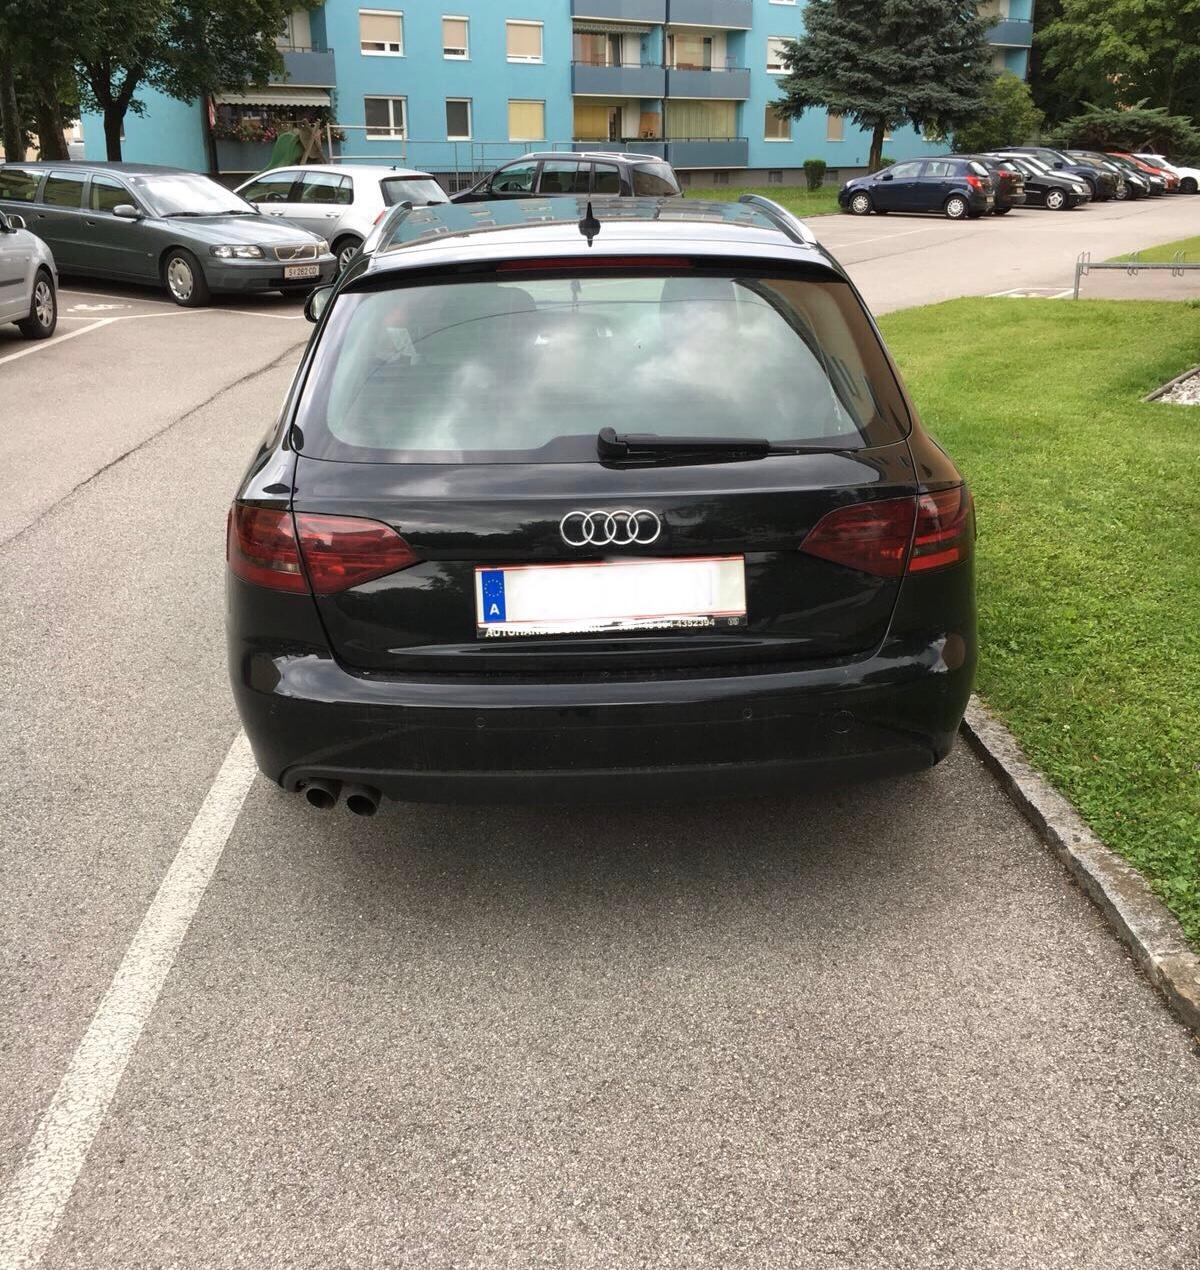 Audi For Sale Under 5000: Audi A4 Avant In 5020 Salzburg For €5,900.00 For Sale